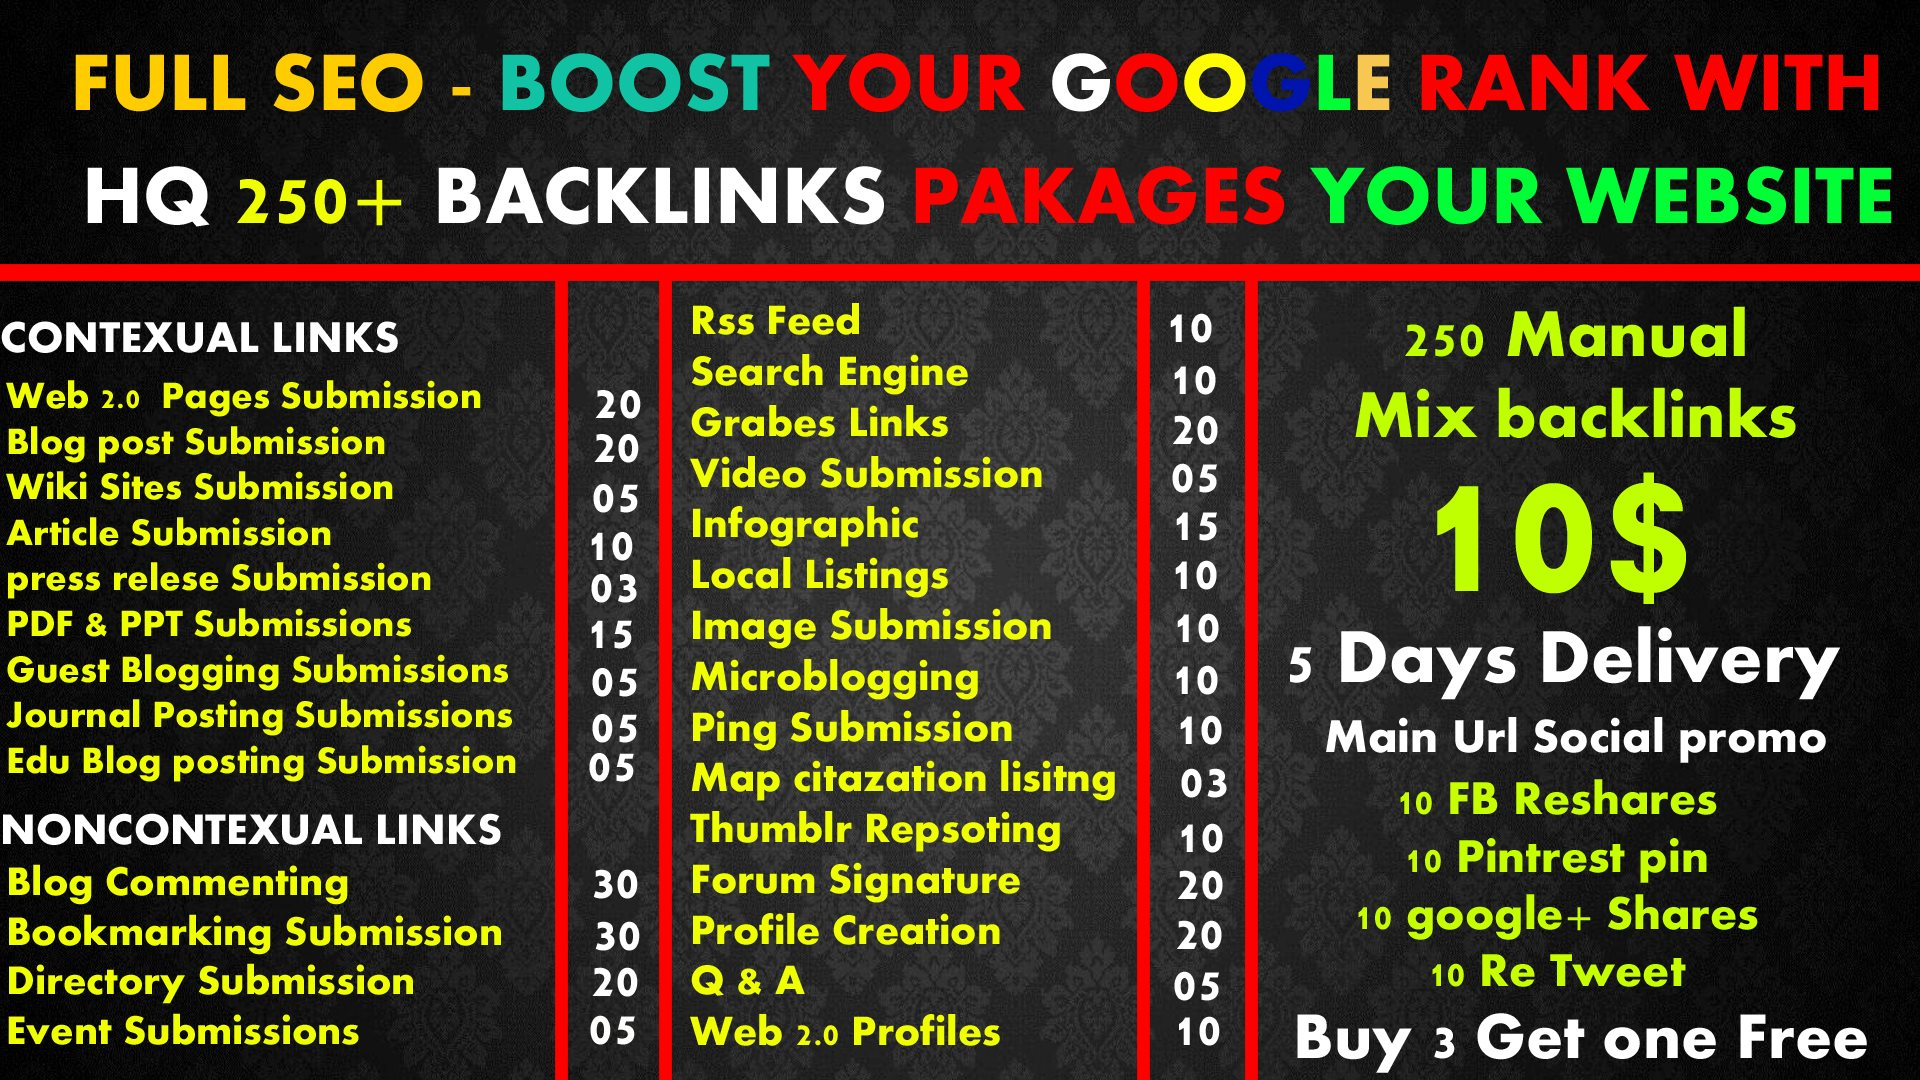 Increase Your Google RANKINGS With High Pr Seo Backlinks